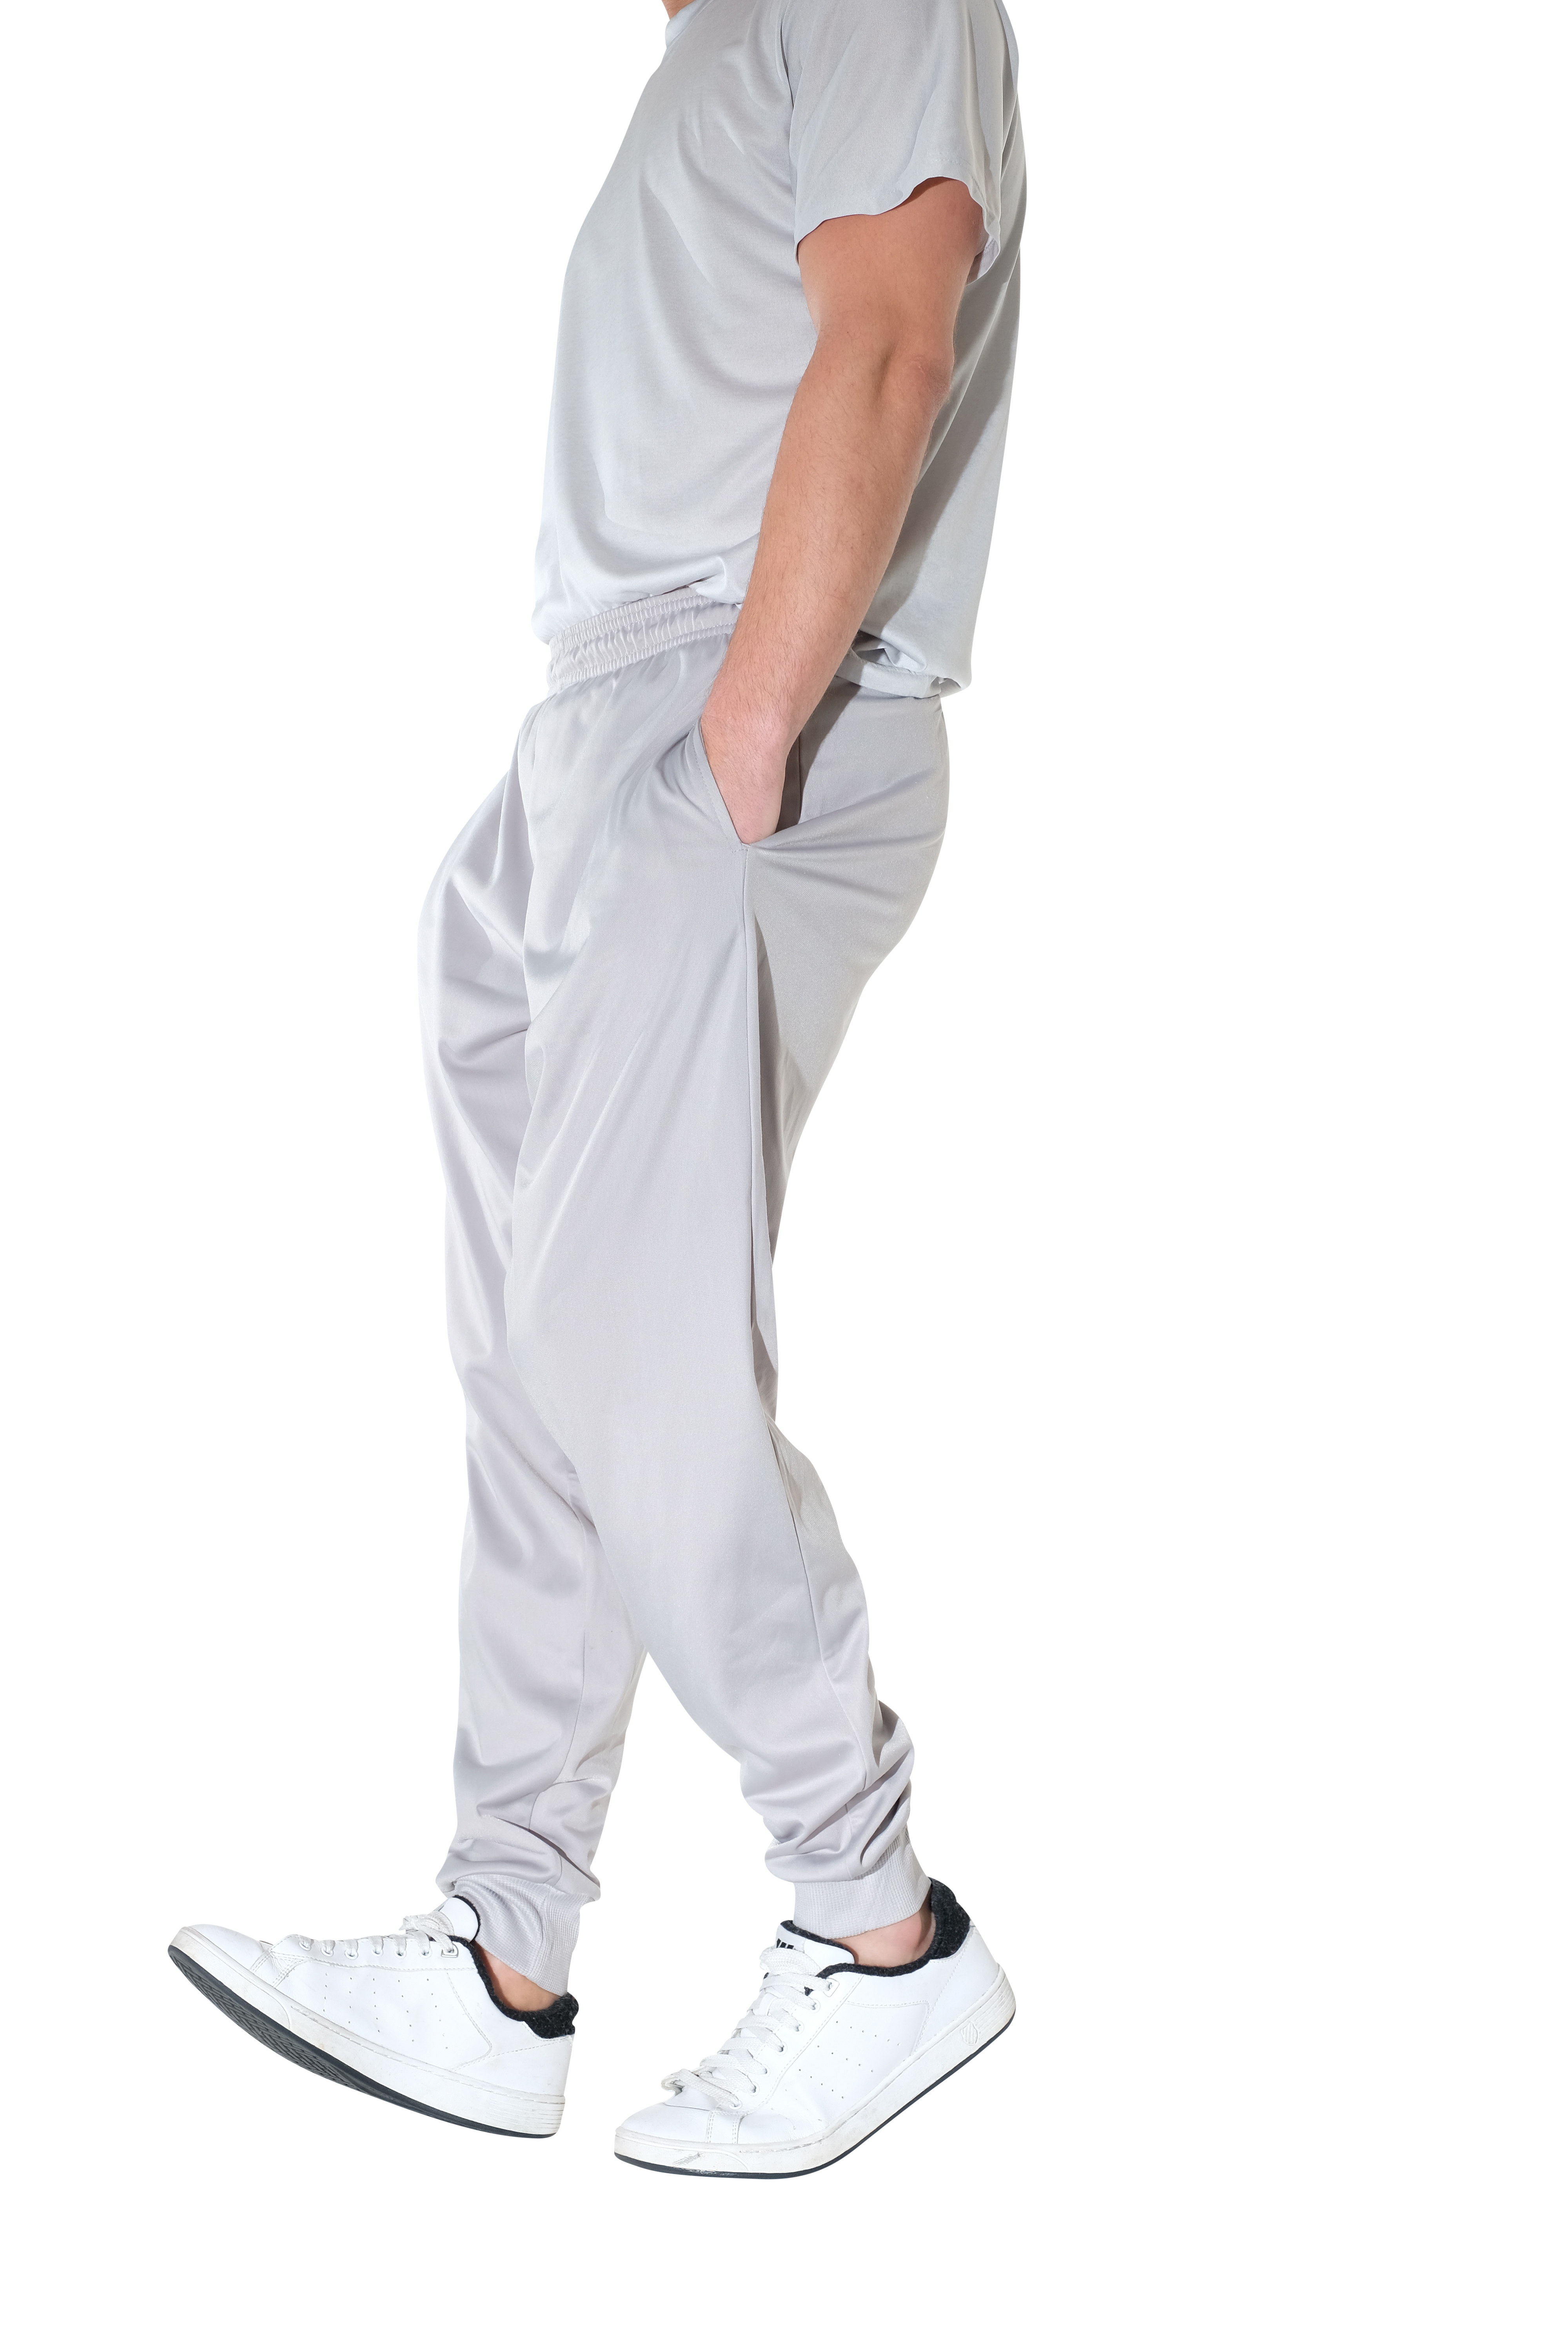 Mens Active Athletic Casual Jogger Sweatpants with Pockets Real Essentials 3 Pack